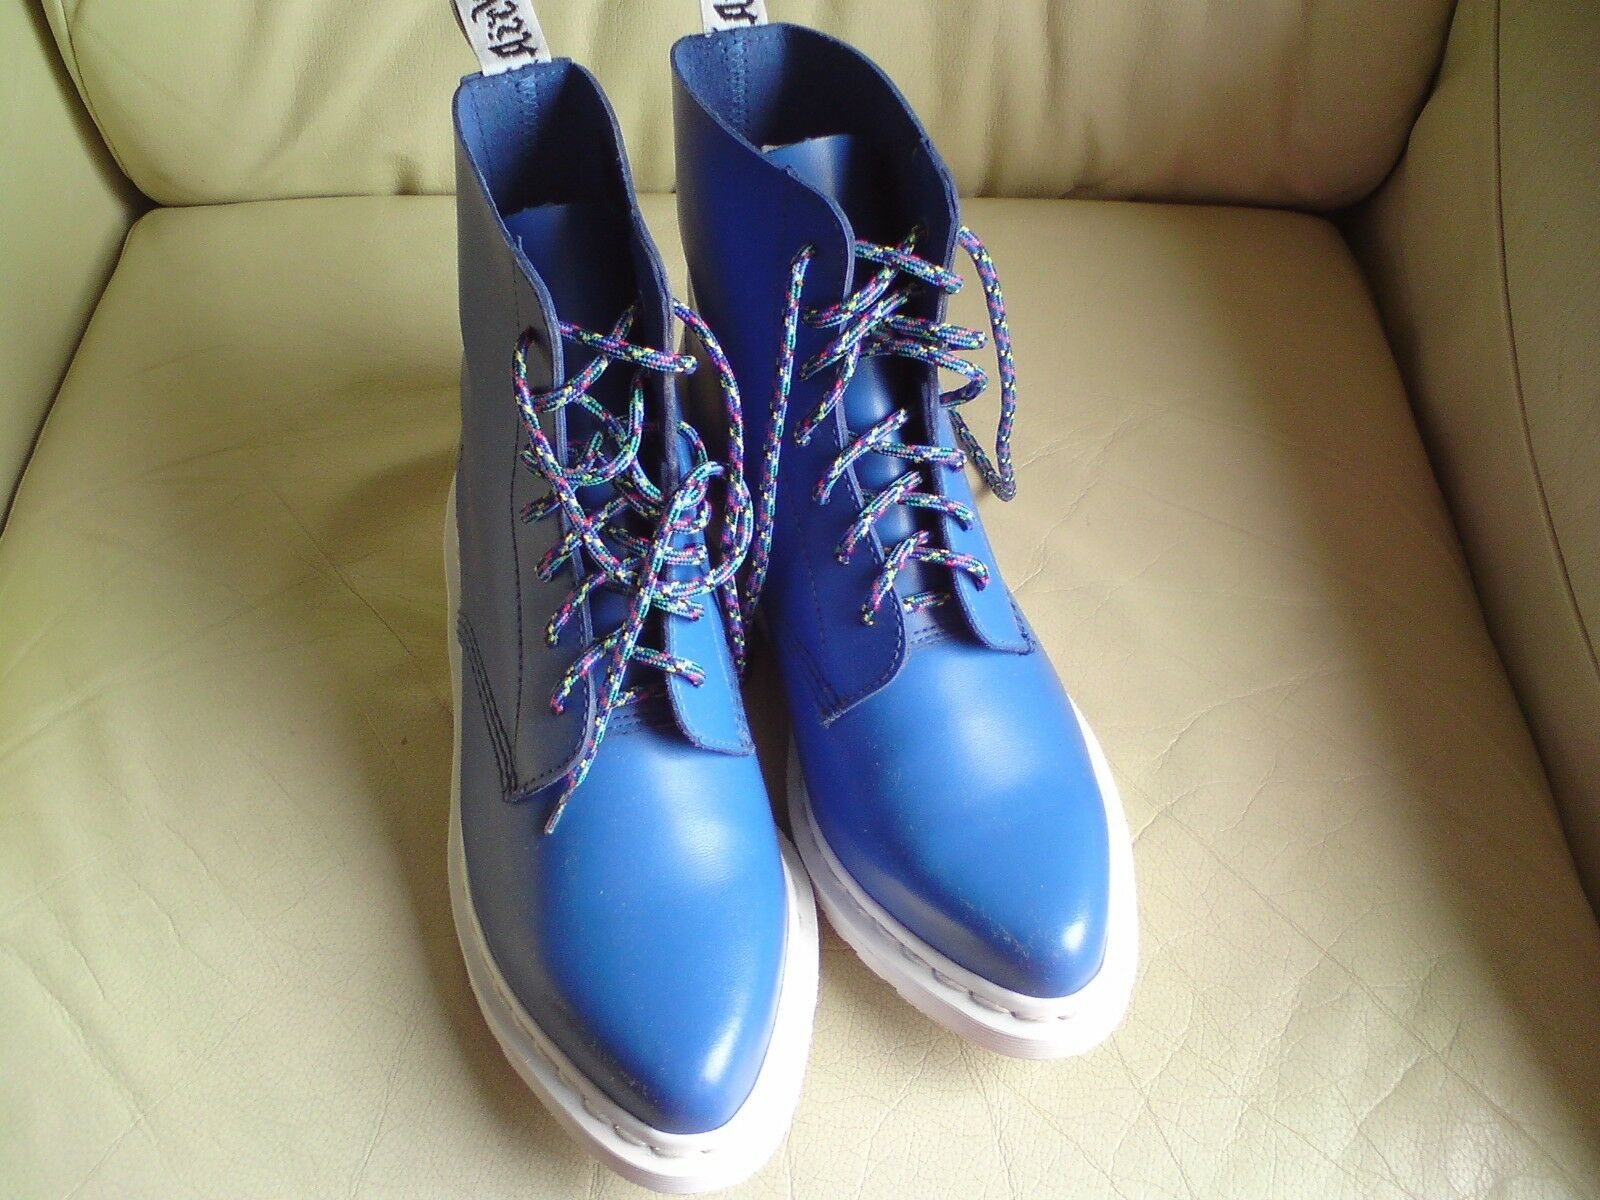 DR MARTENS LADIES blueE BOOTS,EDITH, BOOTS,EDITH, BOOTS,EDITH, SIZE 5 UK, WORN ONCE ONLY, BY JODIE MARSH, 1aa5e9